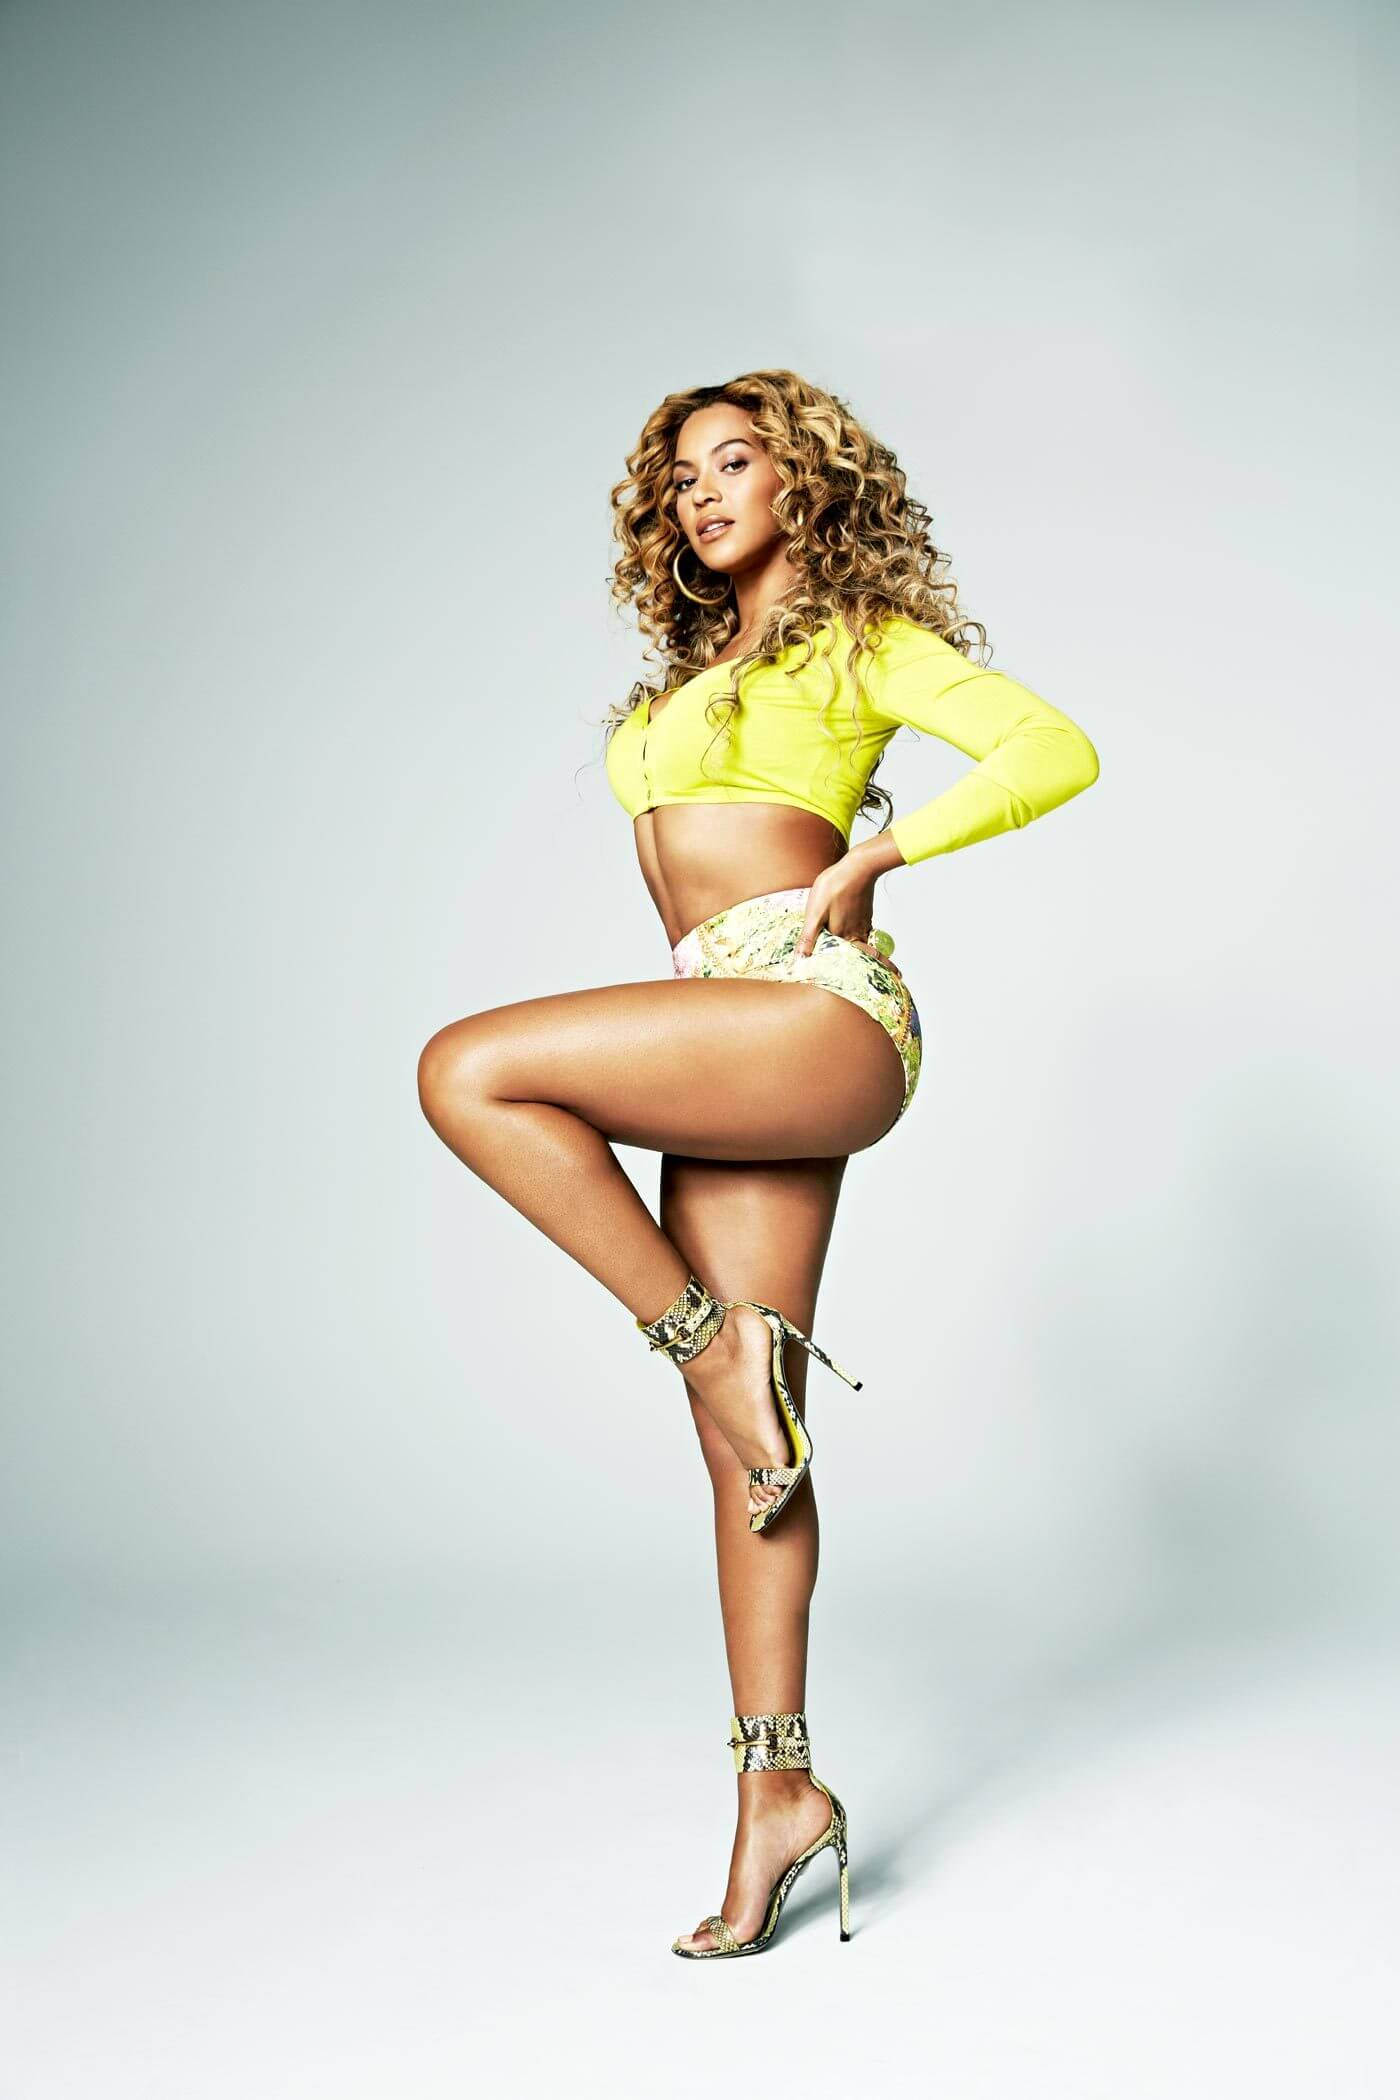 Beyonce awesome thighs pic